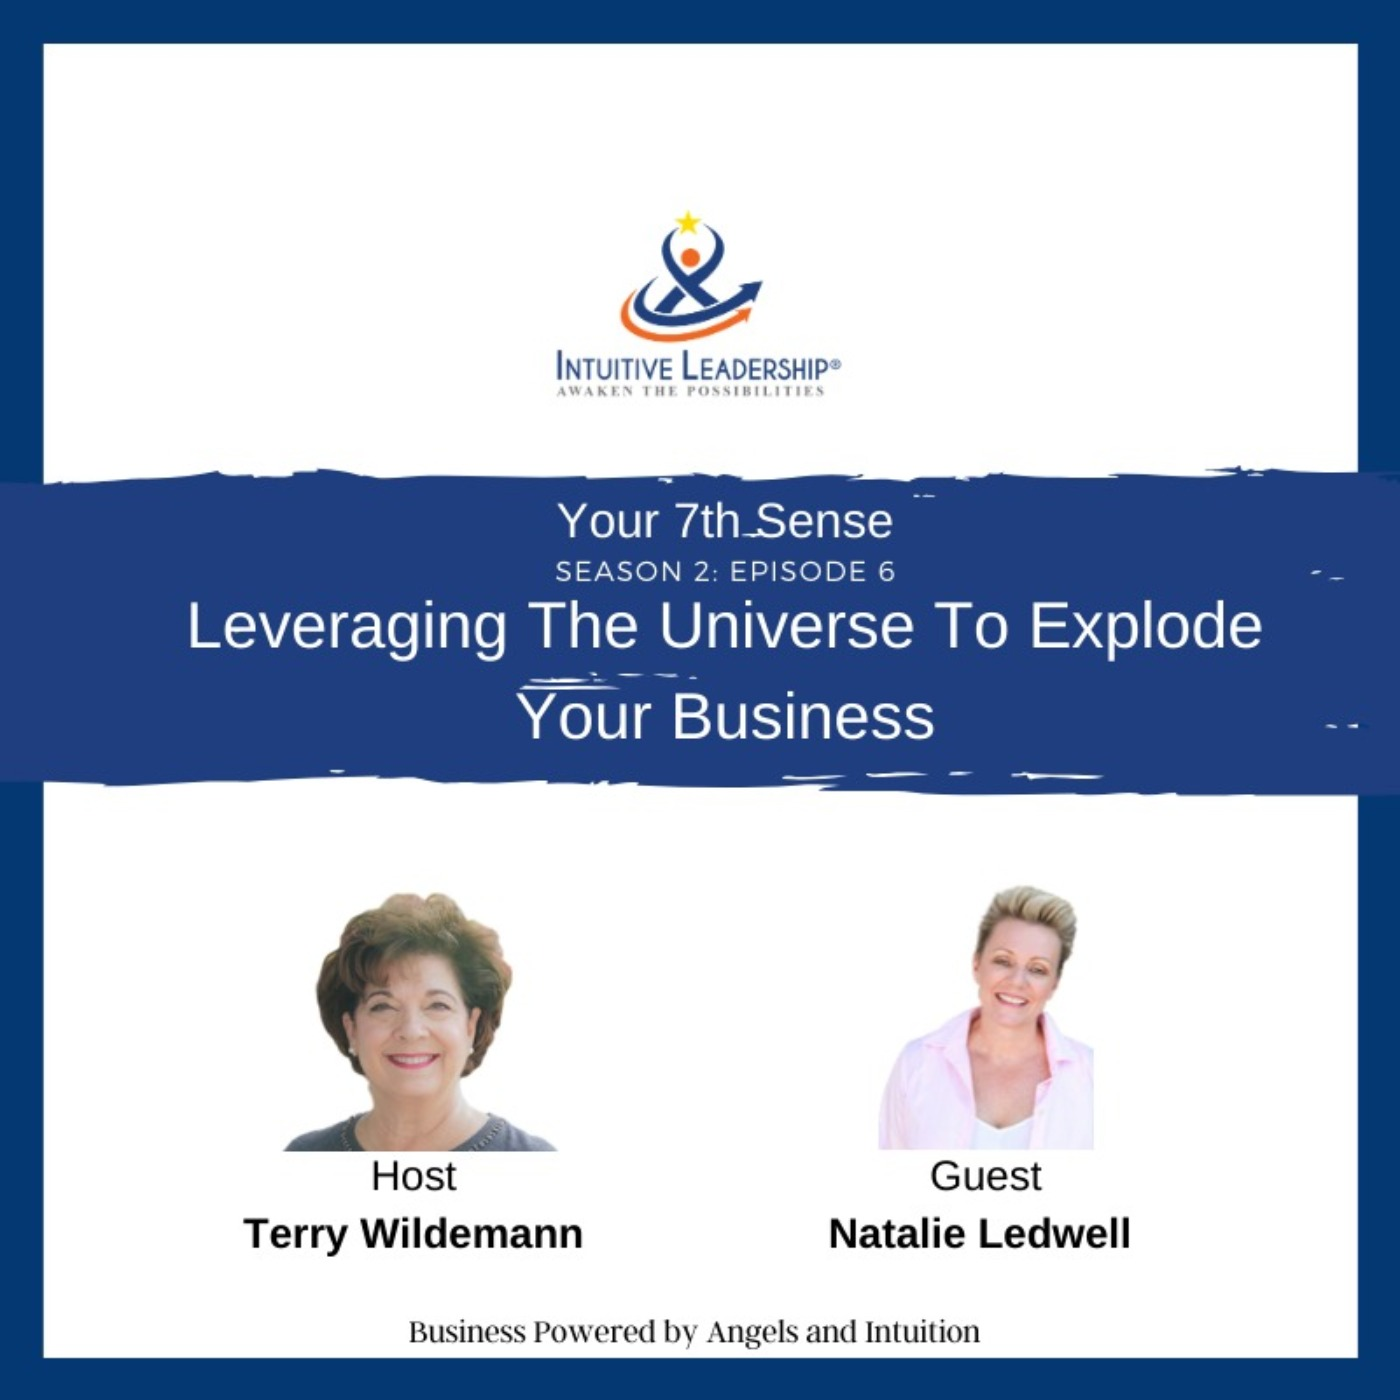 Your 7th Sense: Leveraging The Universe To Explode Your Business